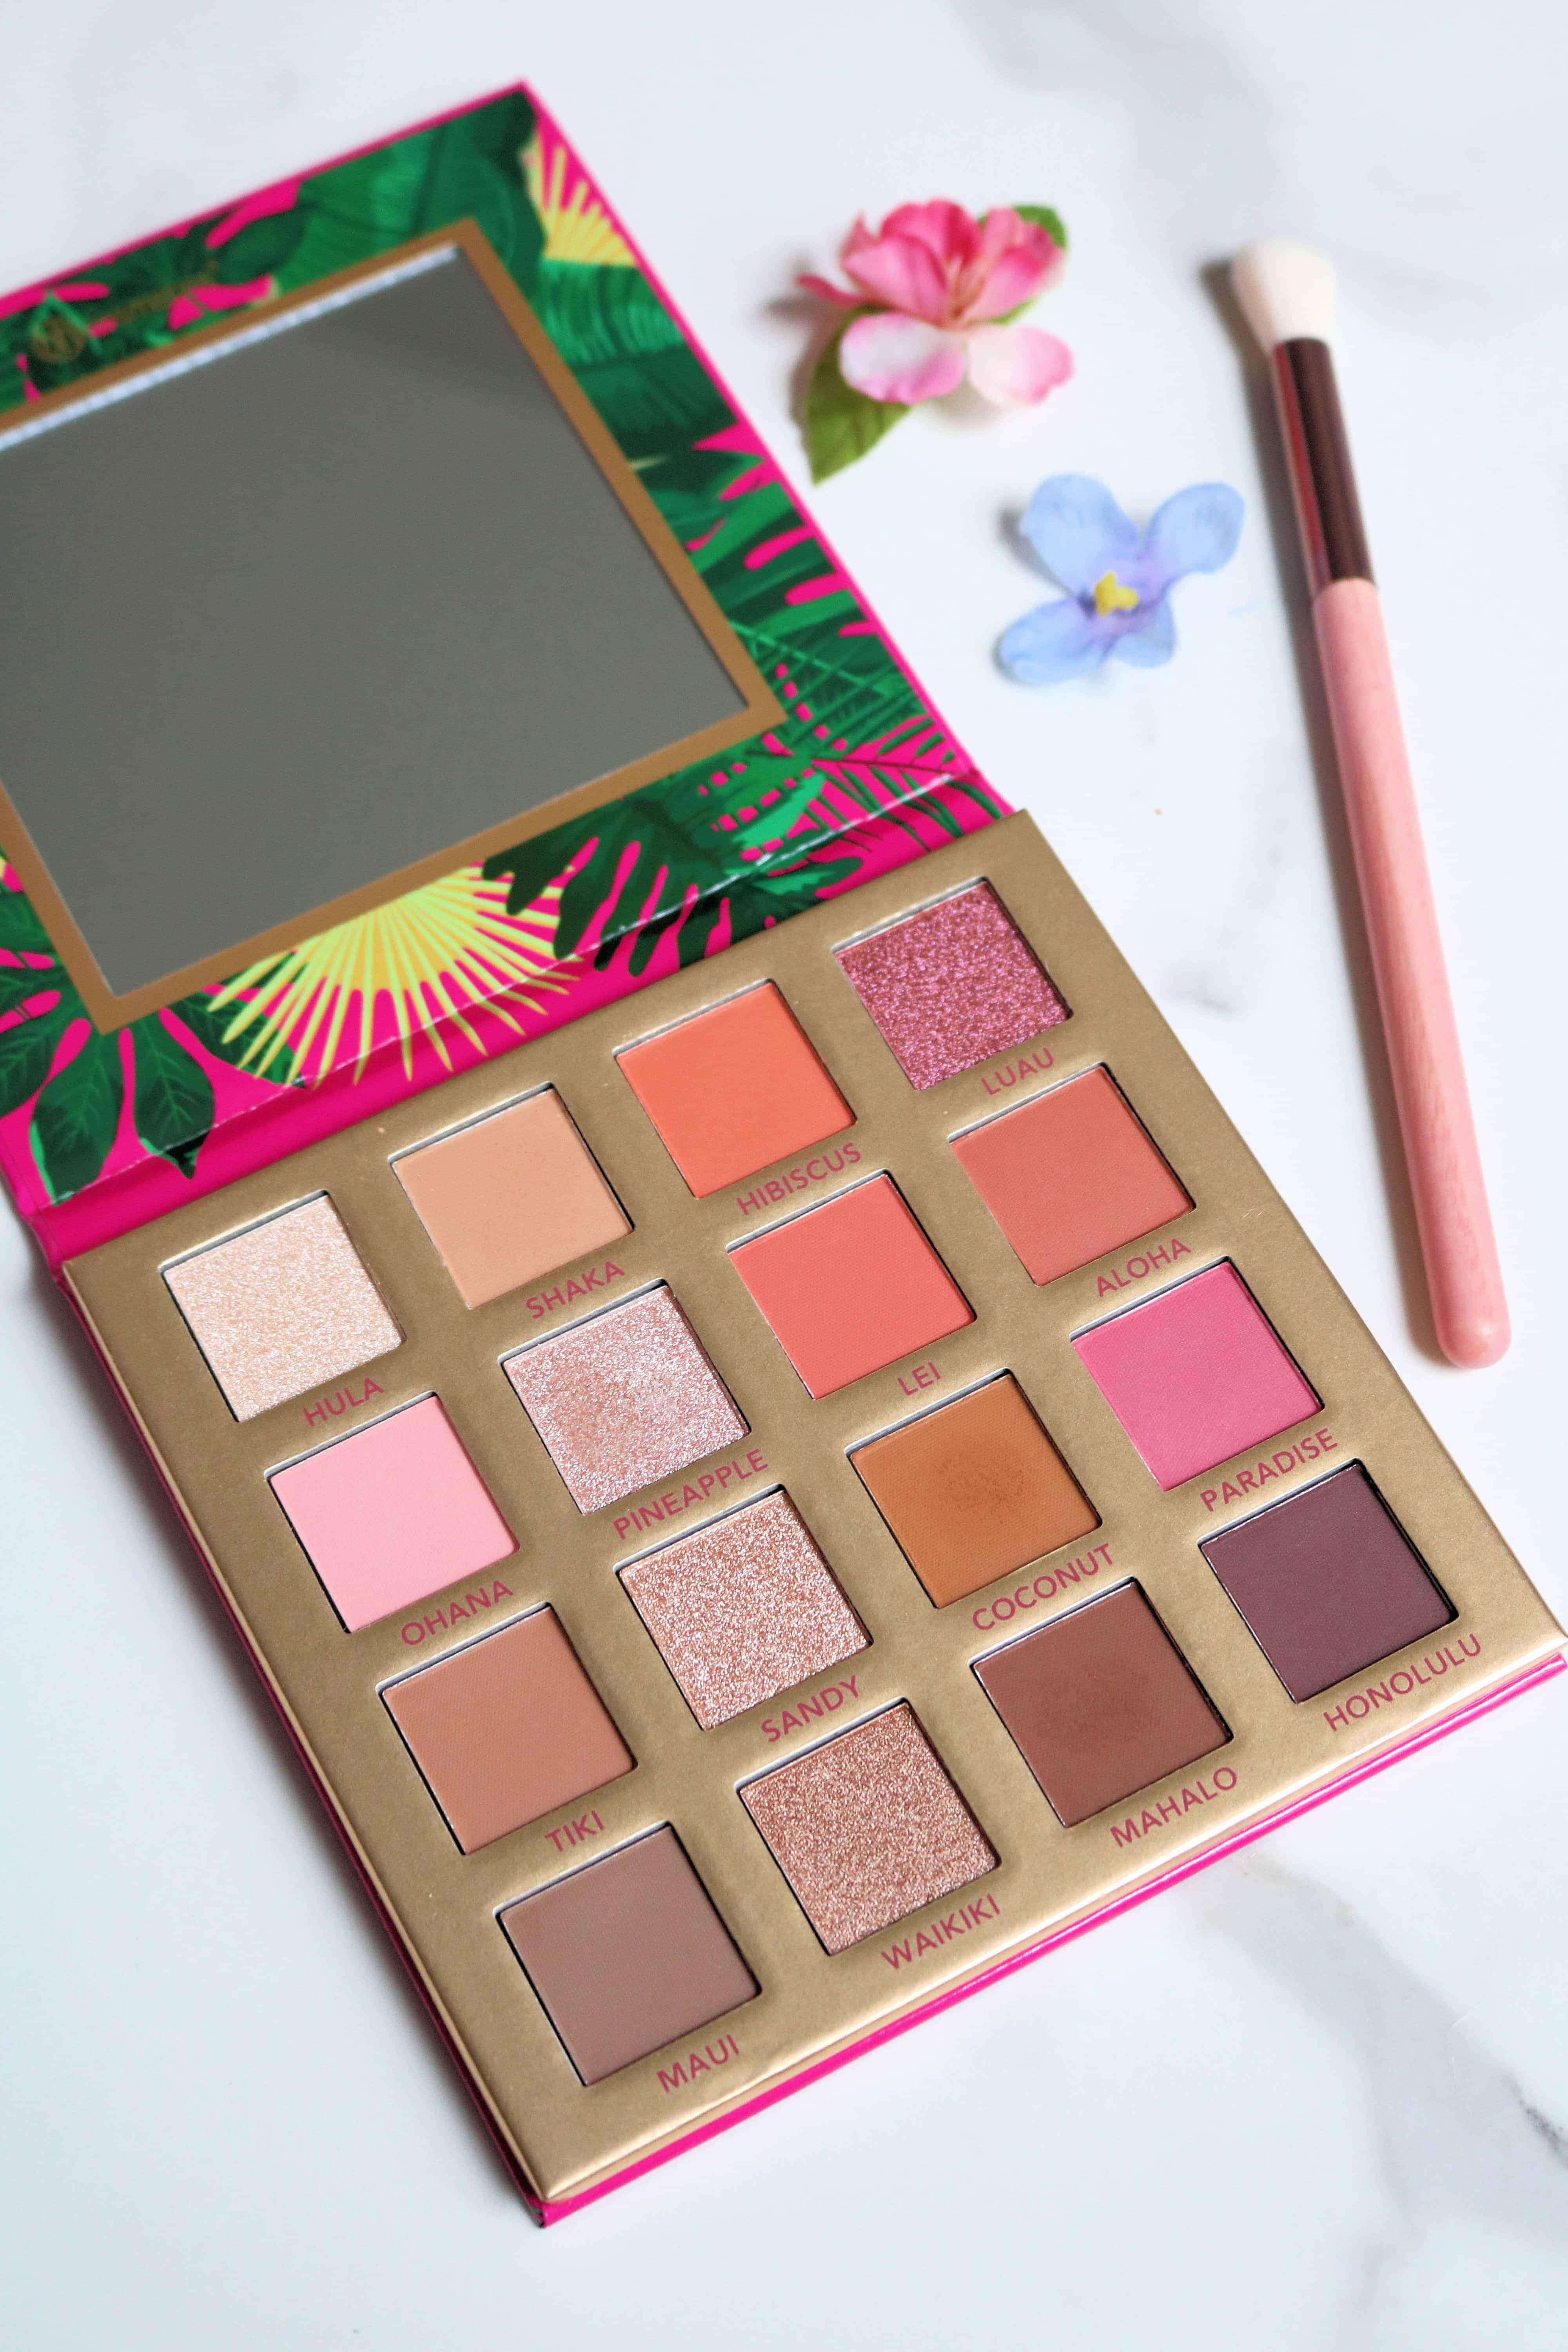 The BH Cosmetics Hangin in Hawaii Palette might just be my new favorite drugstore eyeshadow palette! Check out my review and swatches for my full thoughts. #drugstoremakeup #bhcosmetics #eyeshadowpalette